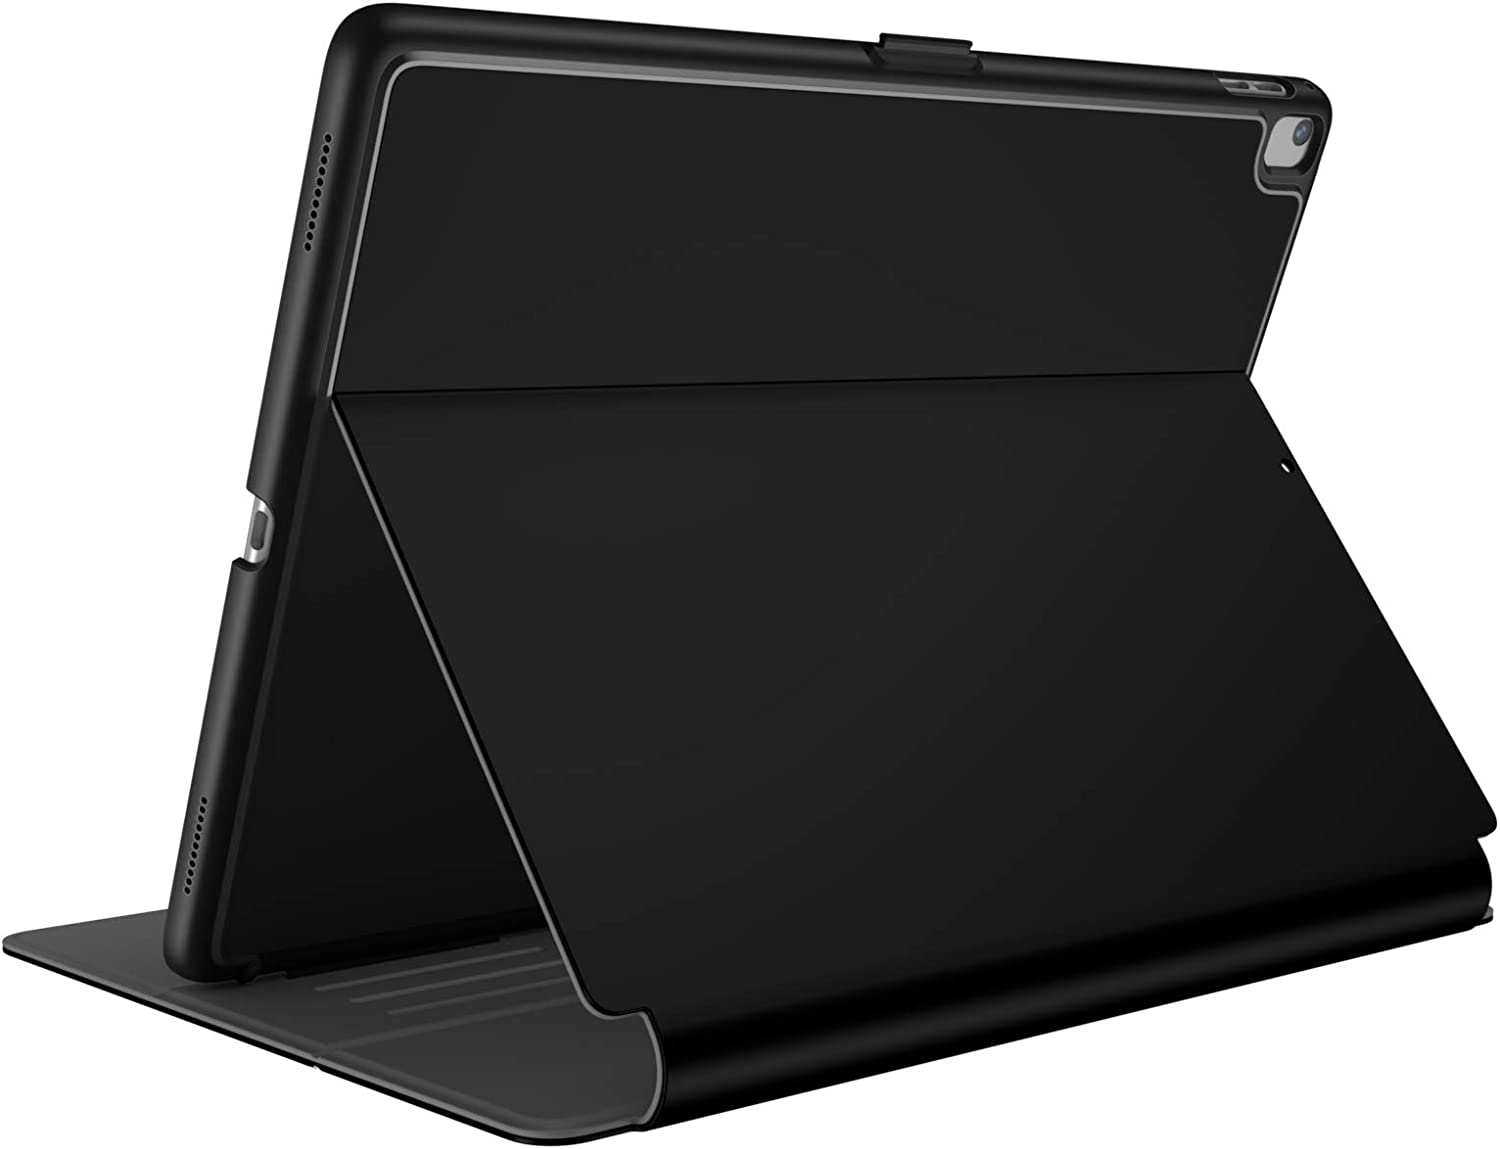 Speck Products 121950-B565 Stylefolio fits the 9.7-Inch iPad Pro (2017/18), iPad Air, and iPad Air 2 Black/Slate Grey